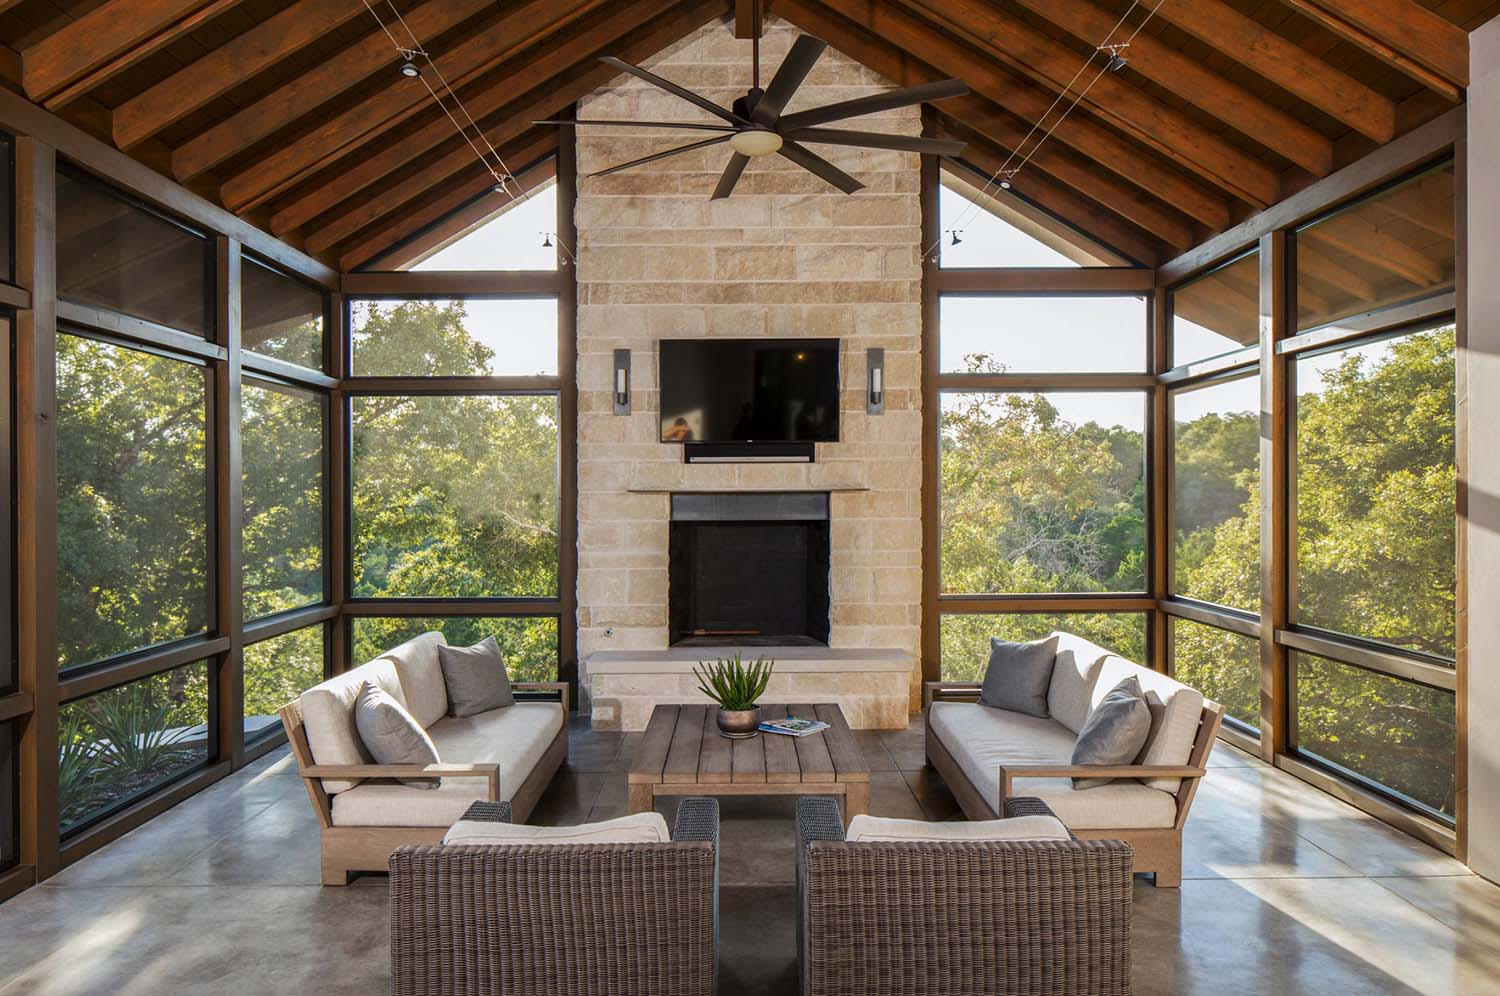 screened in porch ideas screened porch design ideas-12-1 kindesign SGDOFLN